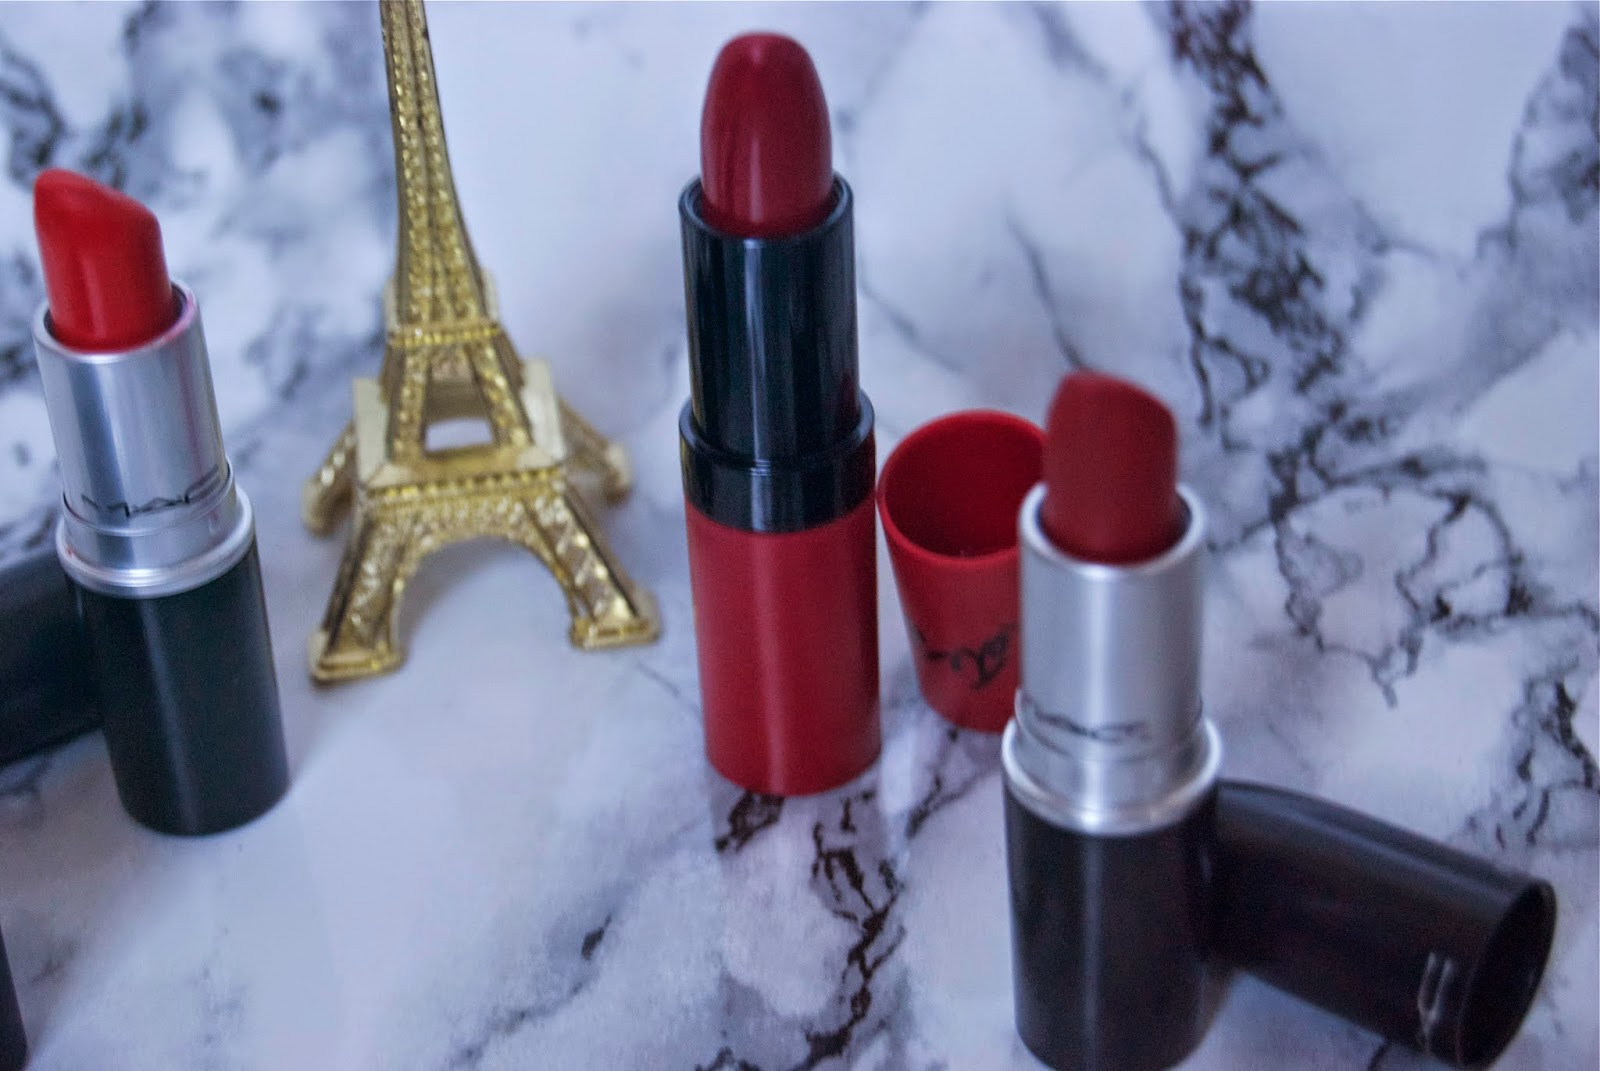 Favourite Red Toned Lipsticks